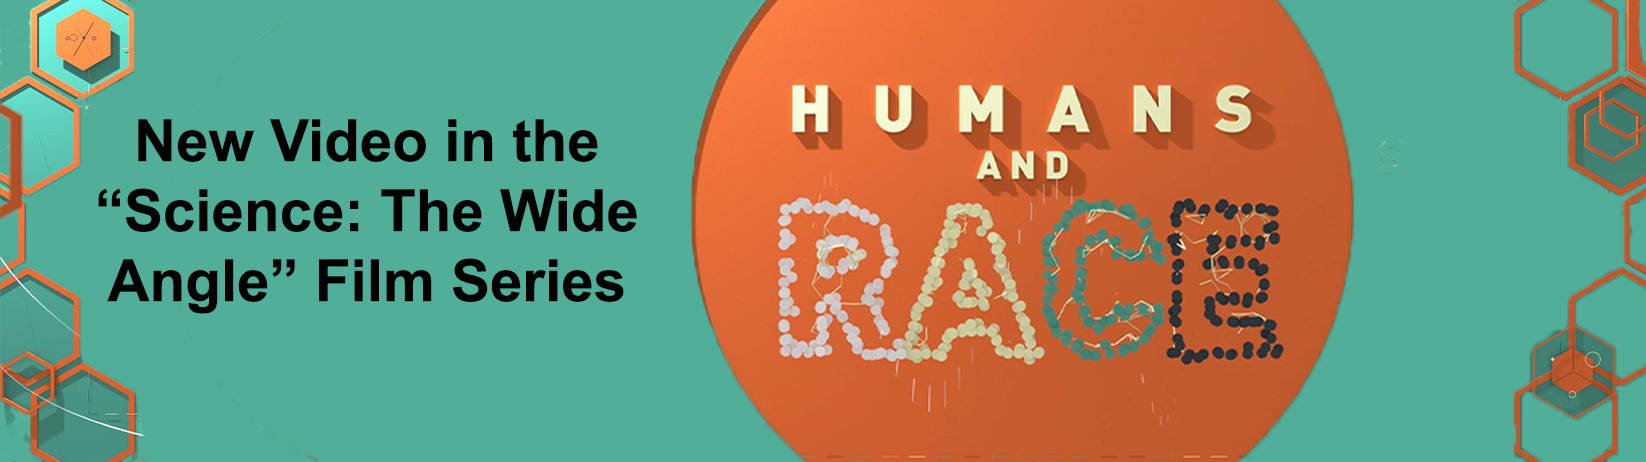 Humans and Race: A new video in the 'Science: The Wide Angle' film series